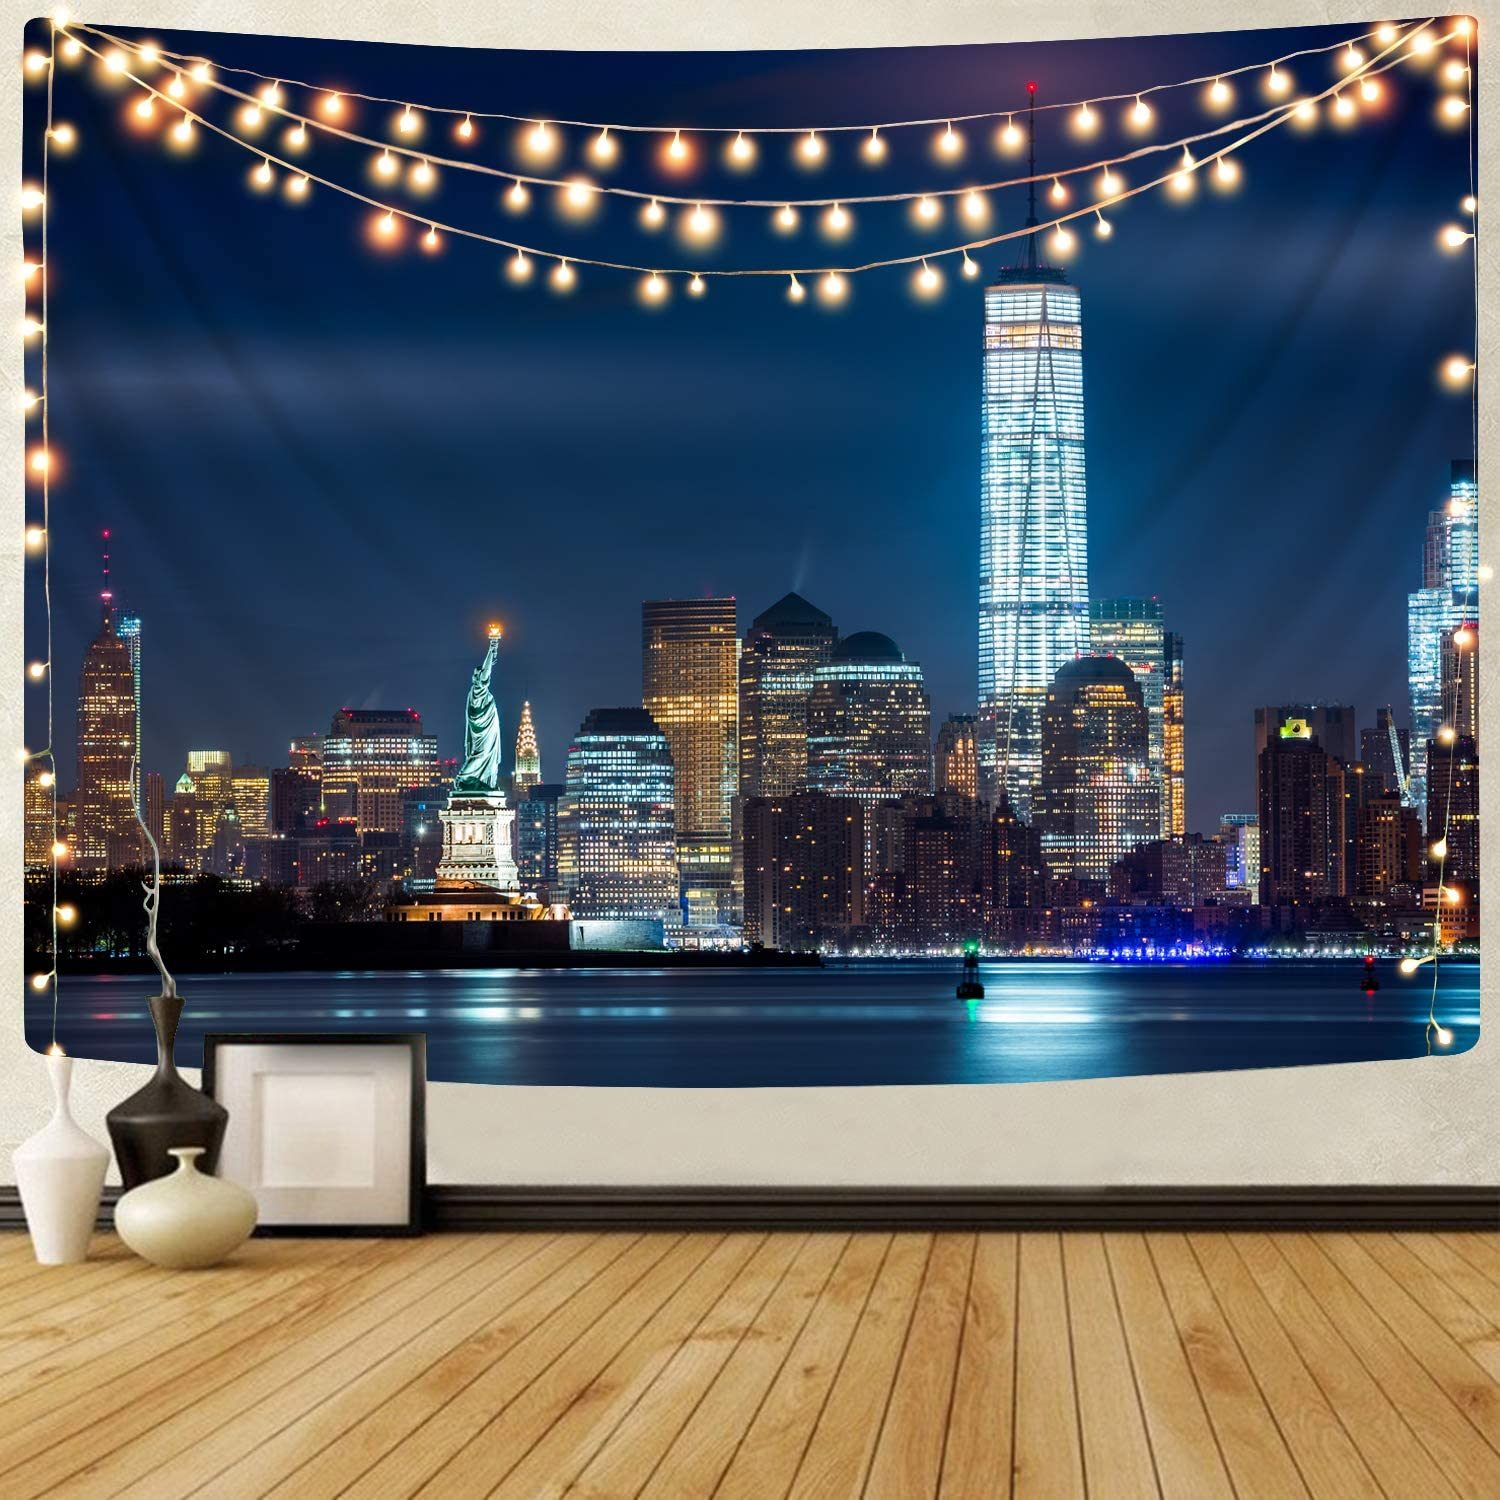 KYKU New York Tapestry Wall Hanging Decor City Tapestry for Bedroom Aesthetic Night Neon Landscape Art Living Room Wall College Dorm Room Cool Modern Posters (51.2